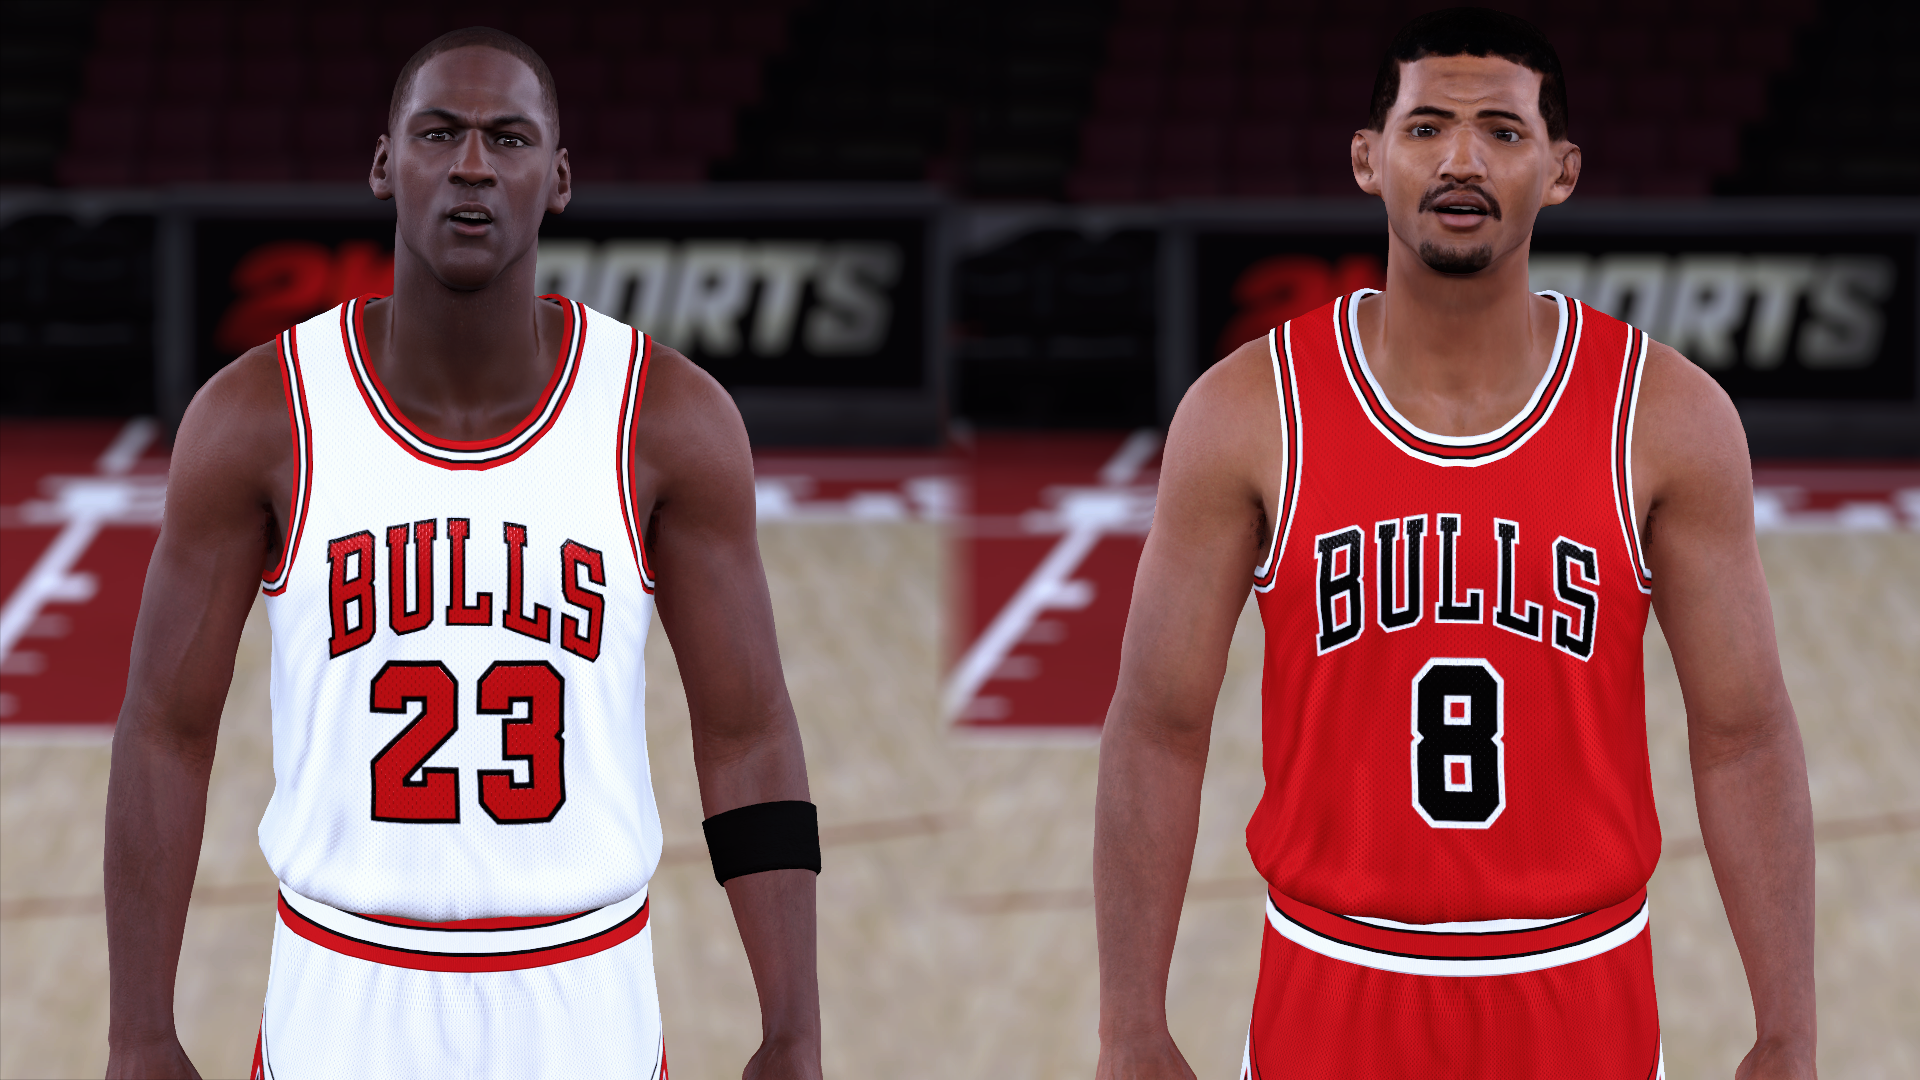 1985-1986 Bulls Jerseys - PeacemanNOT